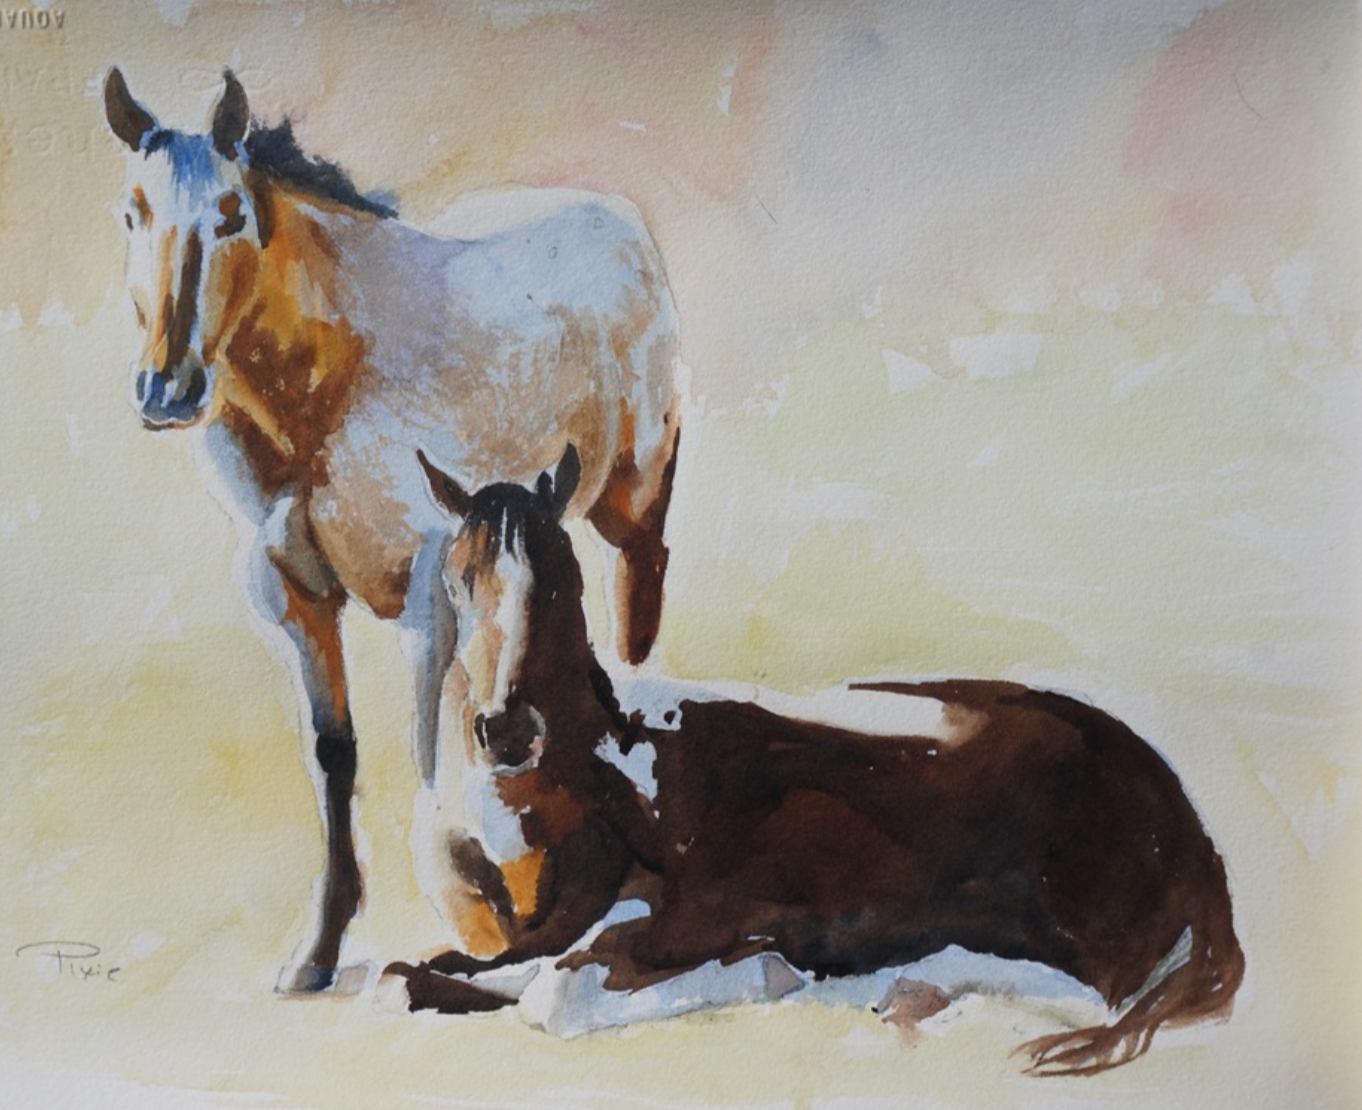 Pixie Glore - http://www.pixieglore.comI paint horses in rich tones with oil paints and watercolors. I have a horse and the spirit of him and his friends is what captivates my soul.